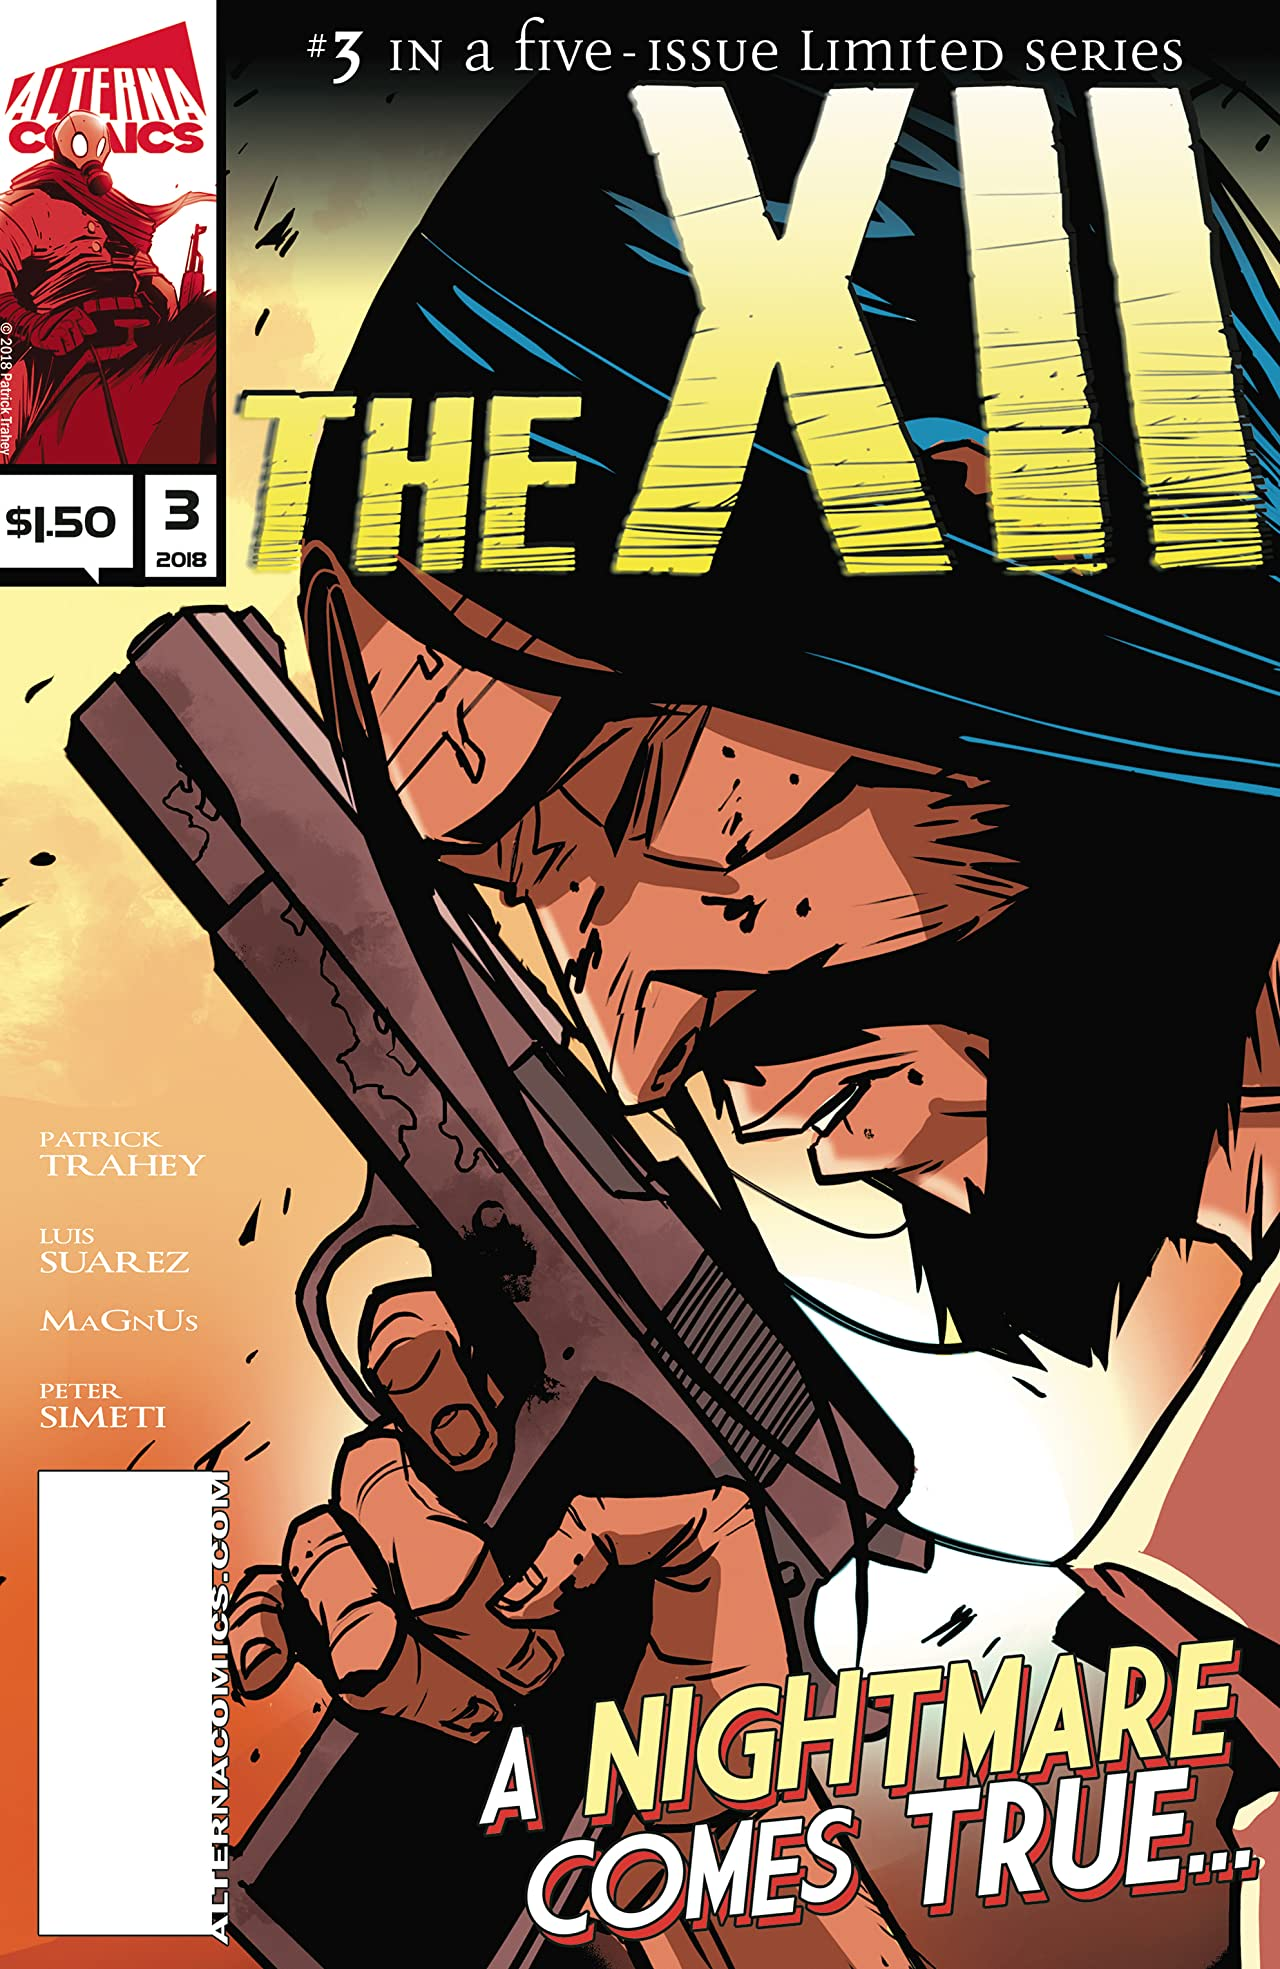 The XII: The Father #3